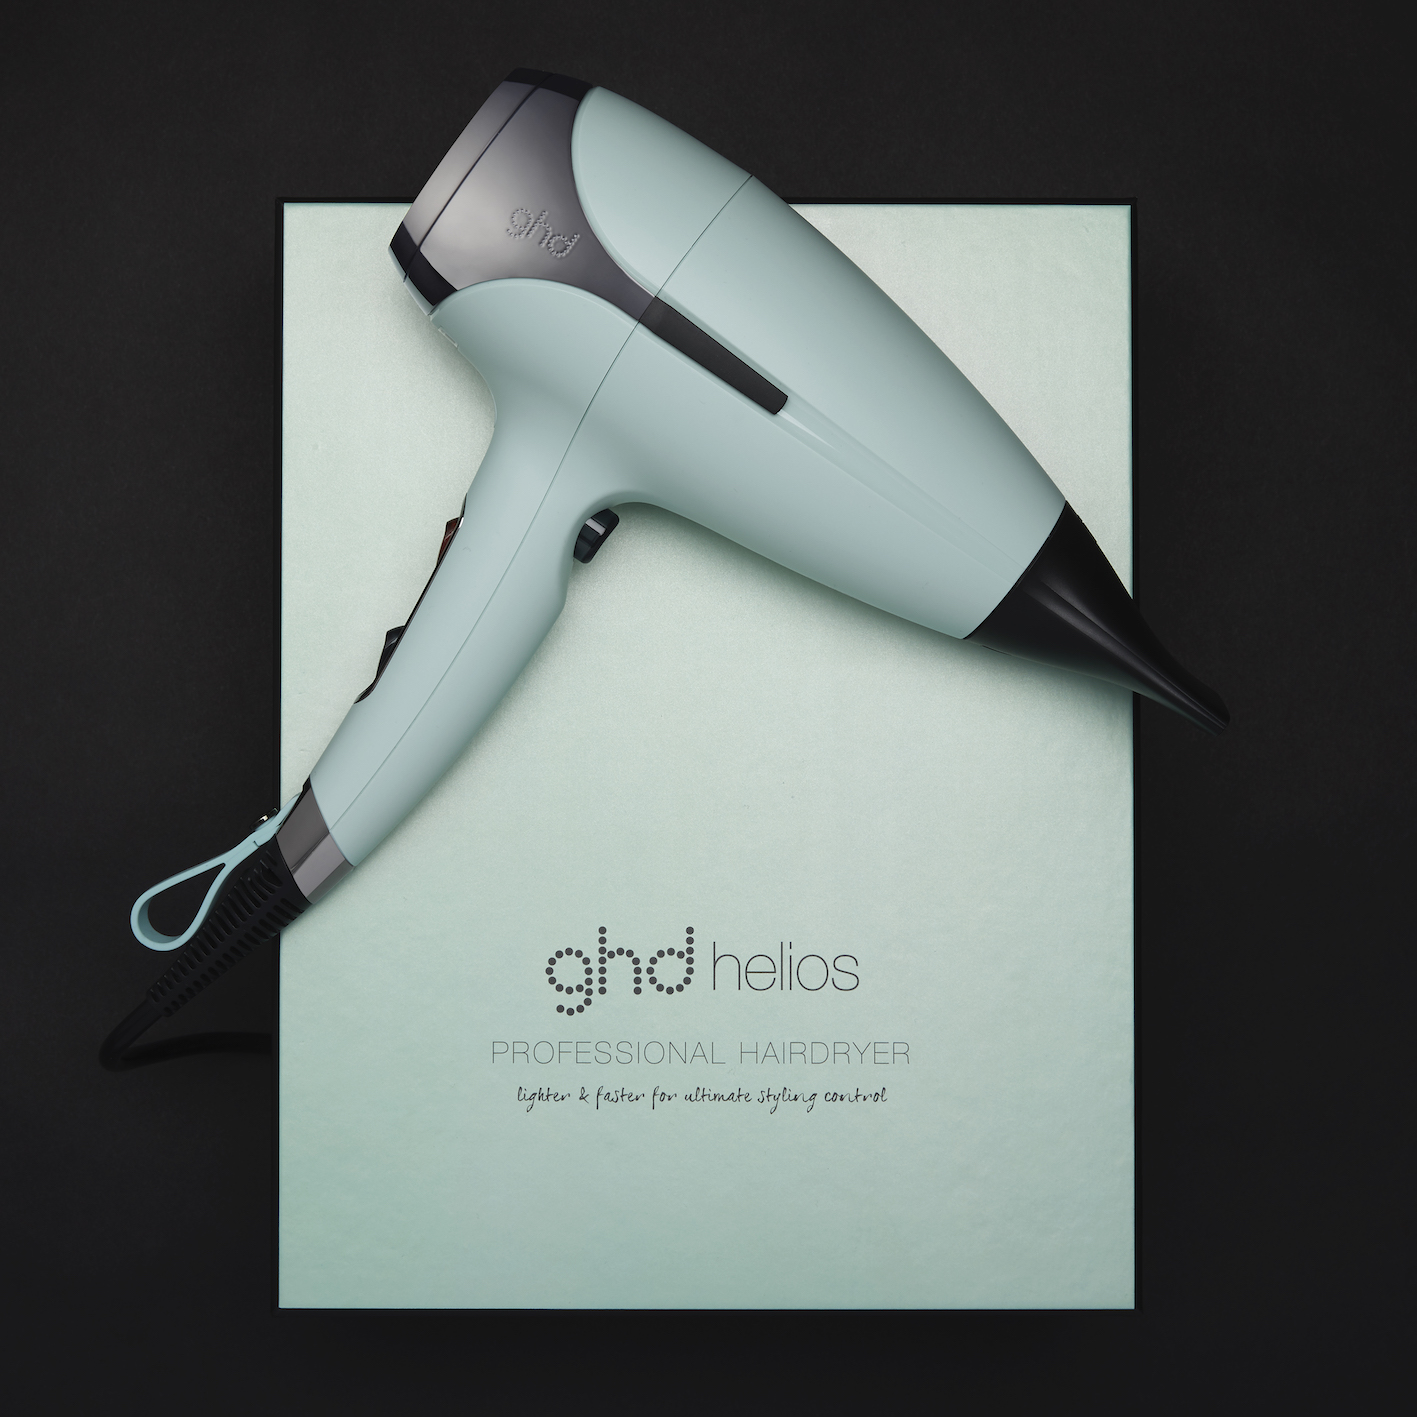 ghd Upbeat Collection helios professional hairdryer_Campaign Imagery_Neo-Mint (4)